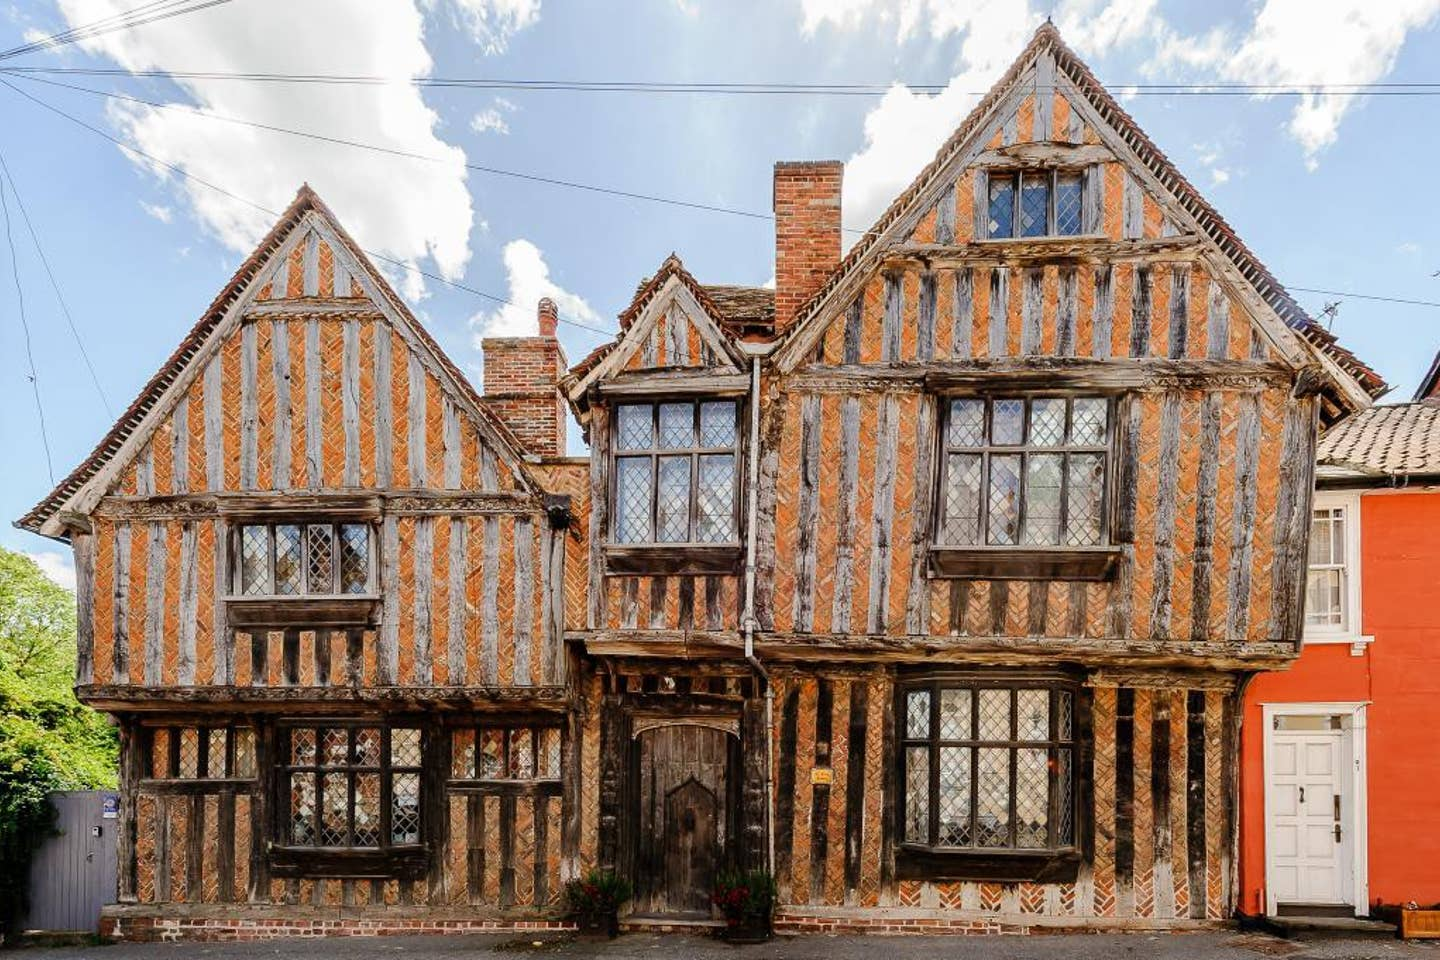 Harry Potter's childhood home is now renting rooms on Airbnb